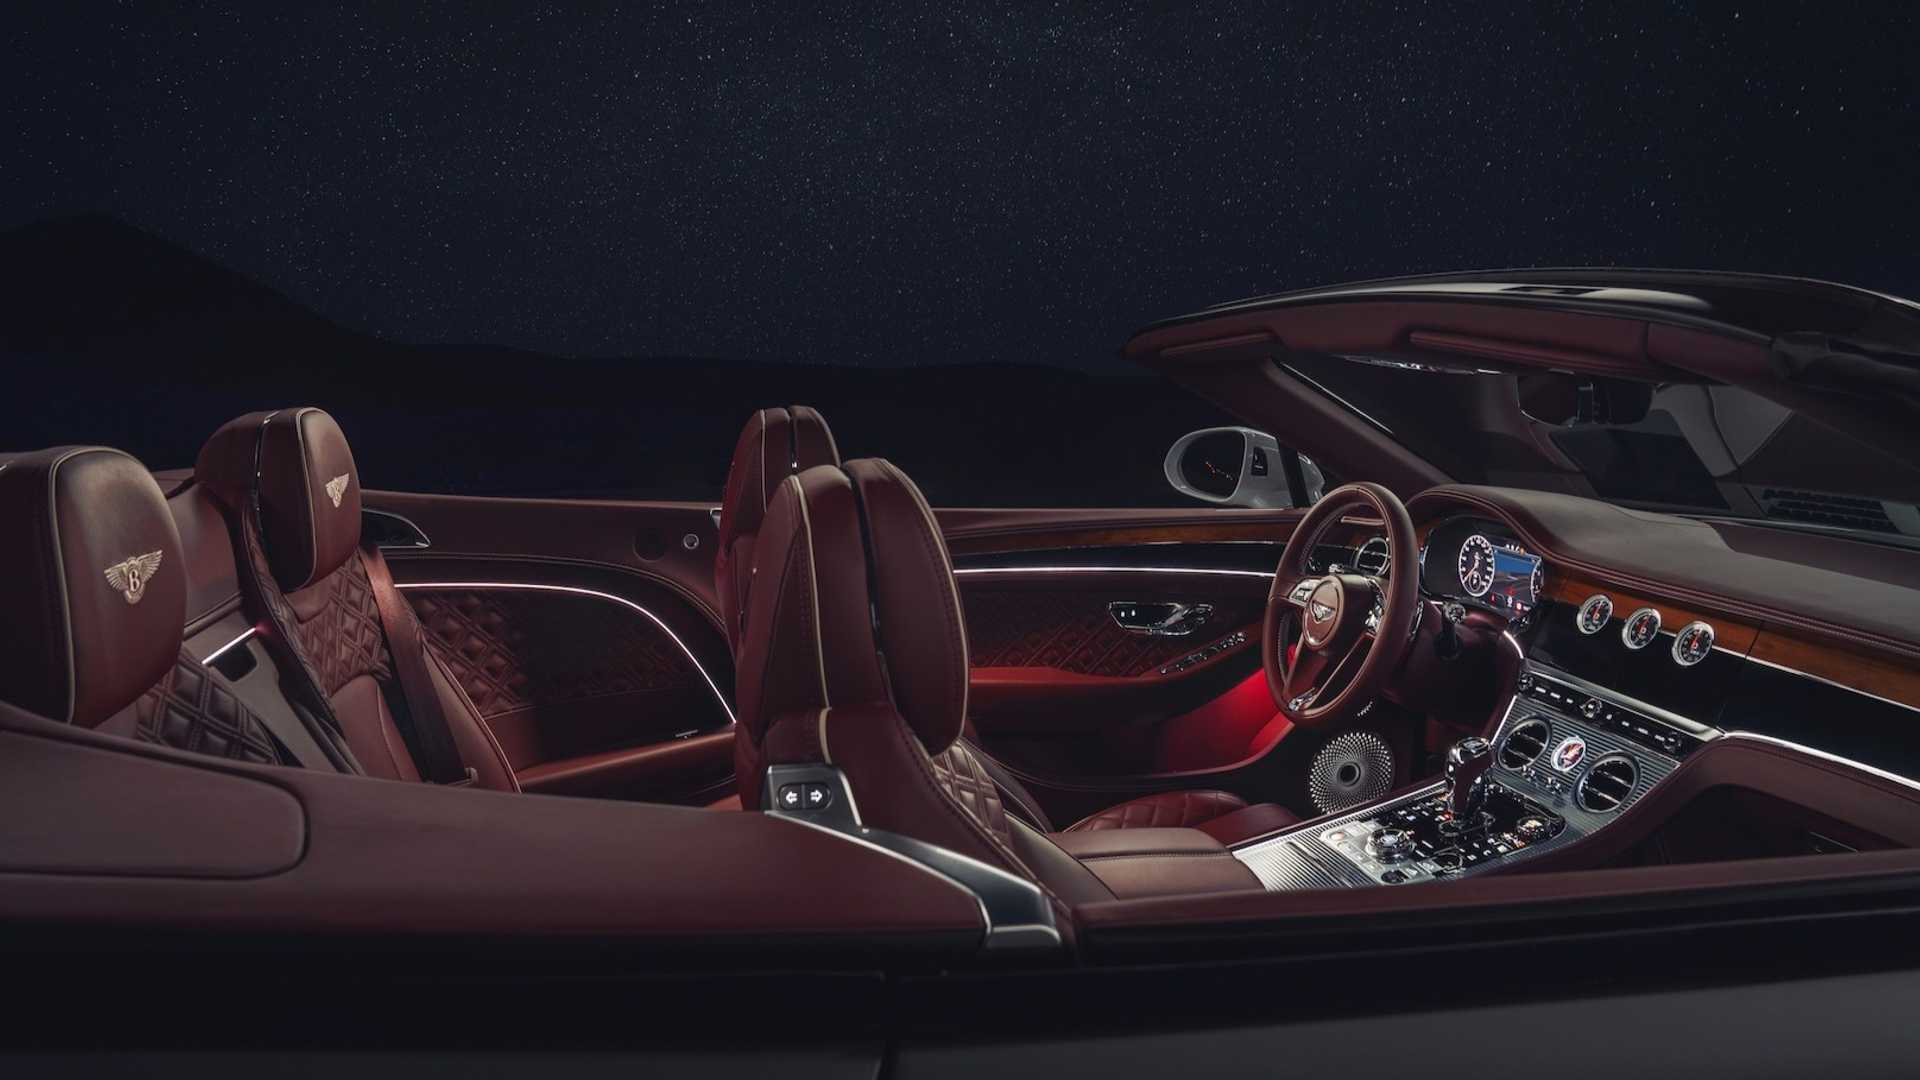 2019-bentley-continental-gt-convertible-unveiled-207-mph-luxury-droptop (25)